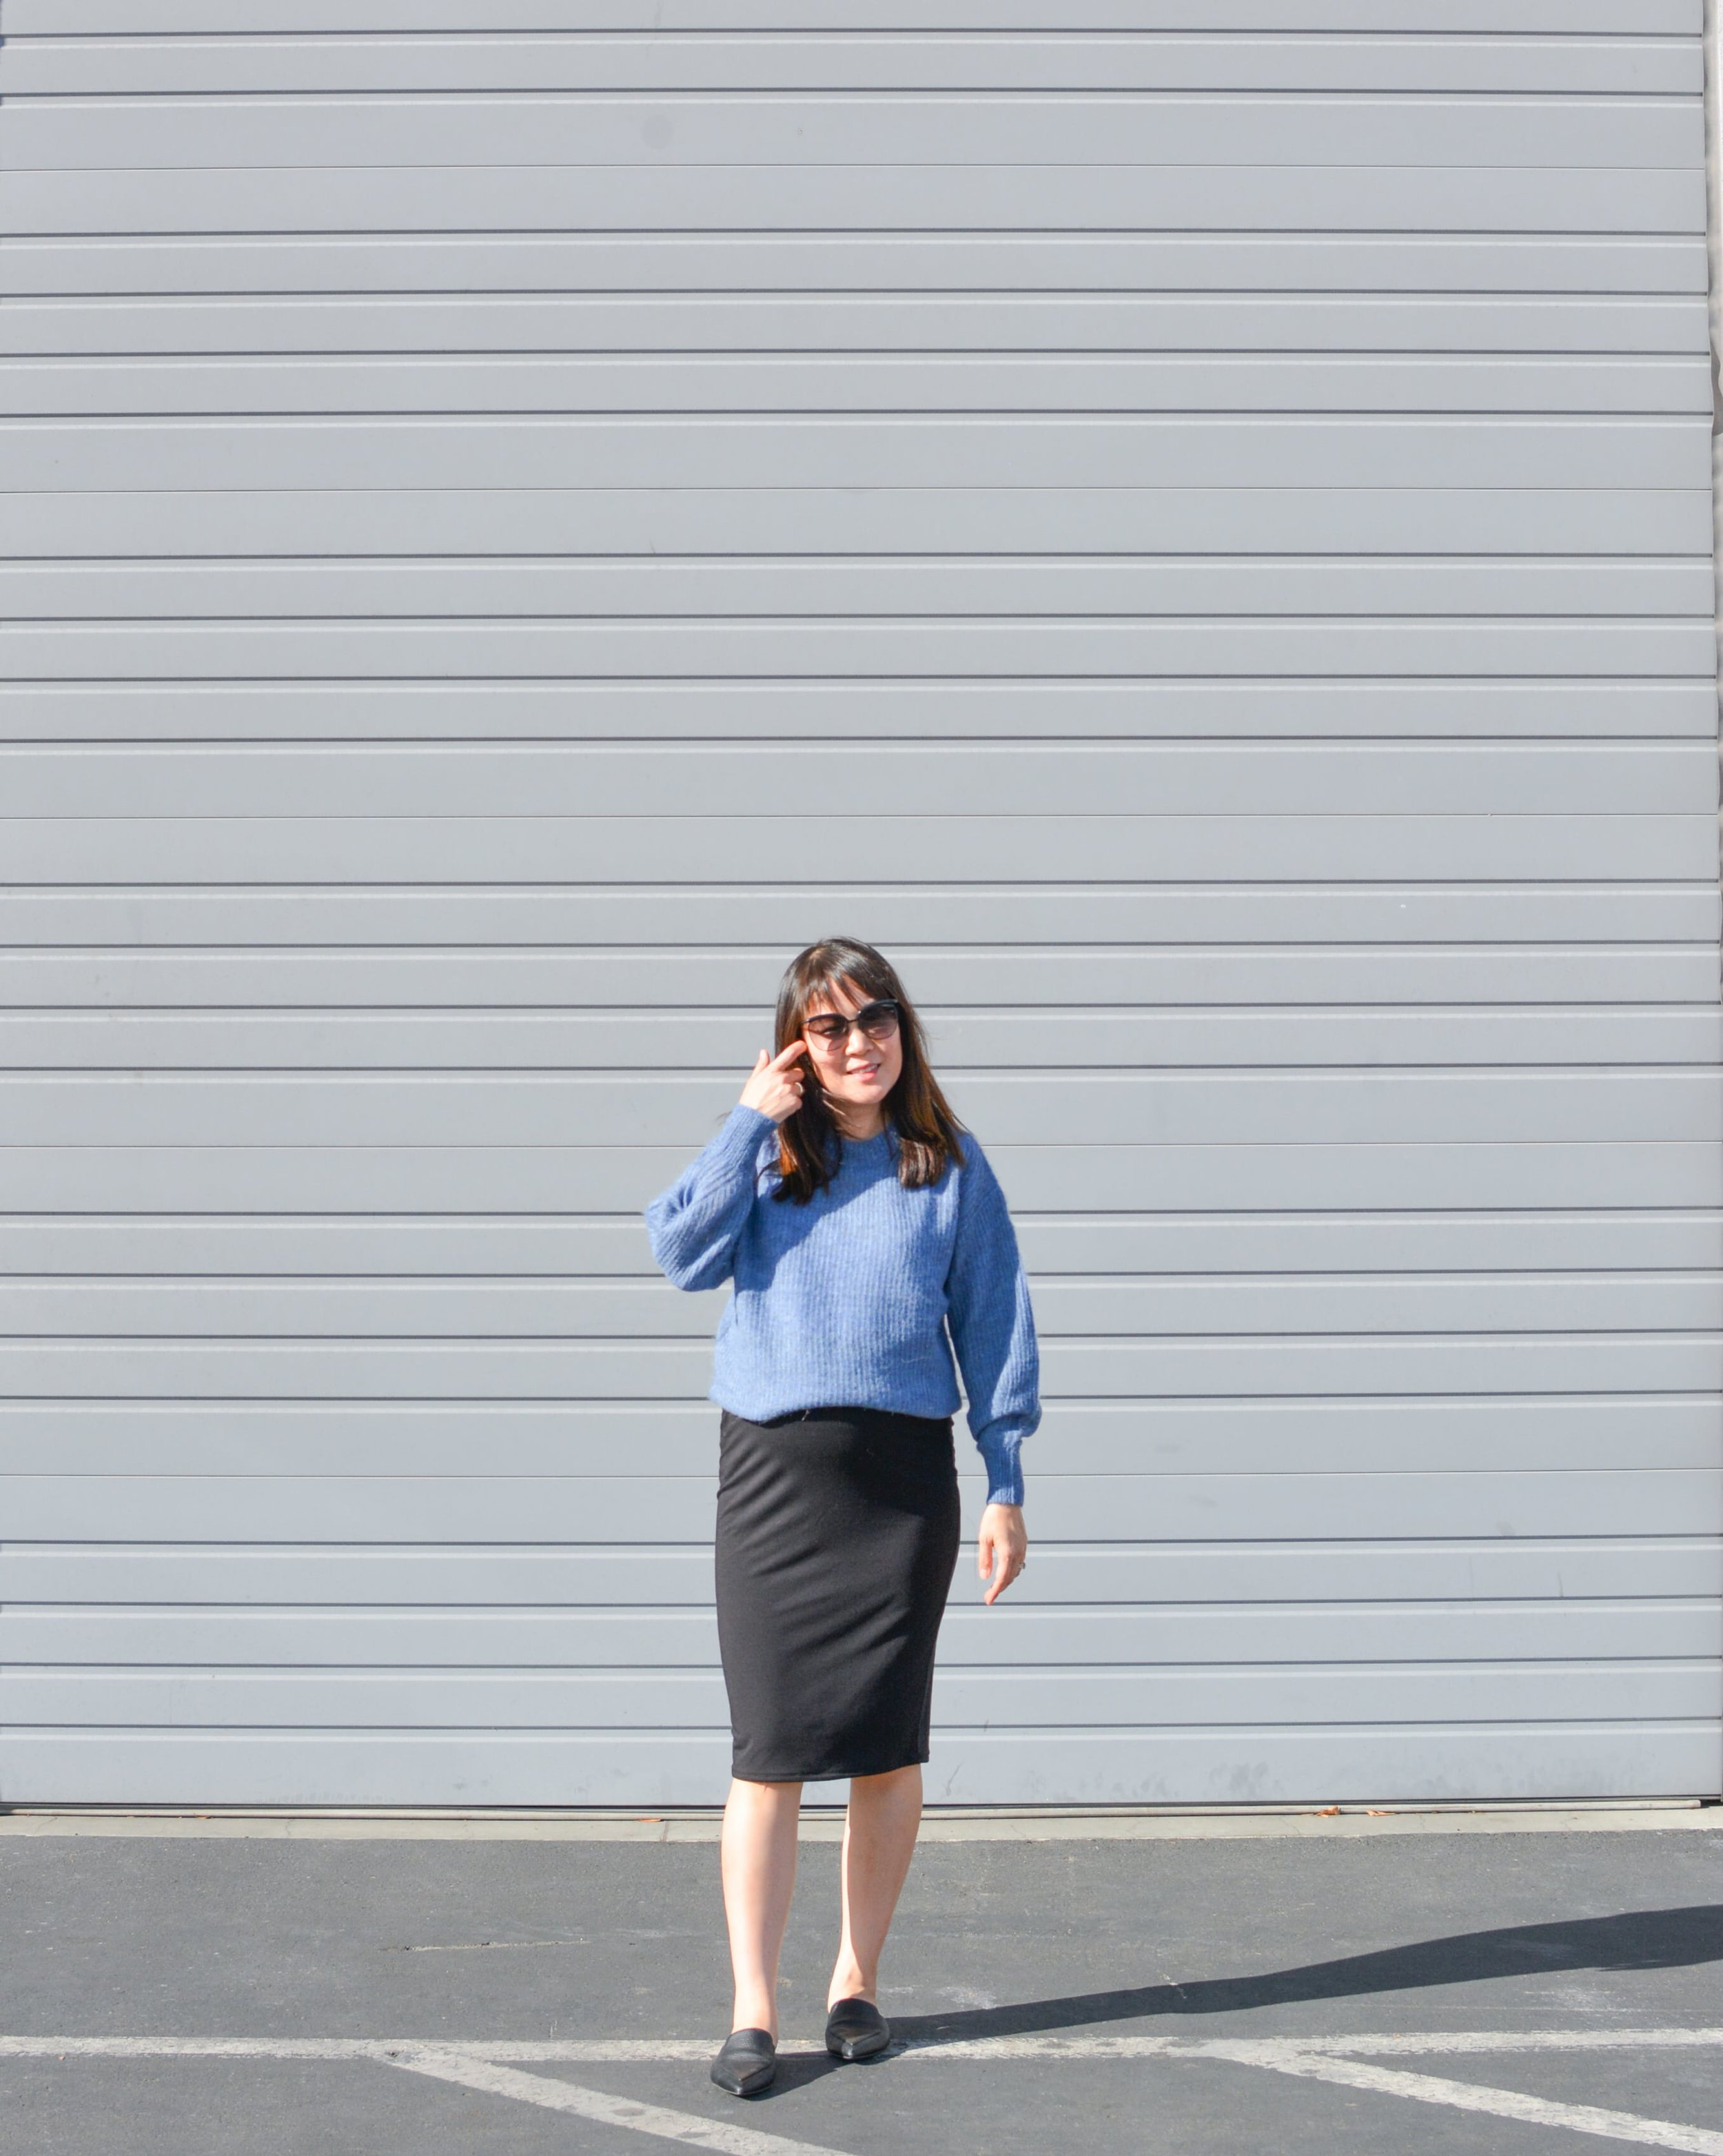 Storq Pencil Skirt Review (1 of 3)-min.jpg